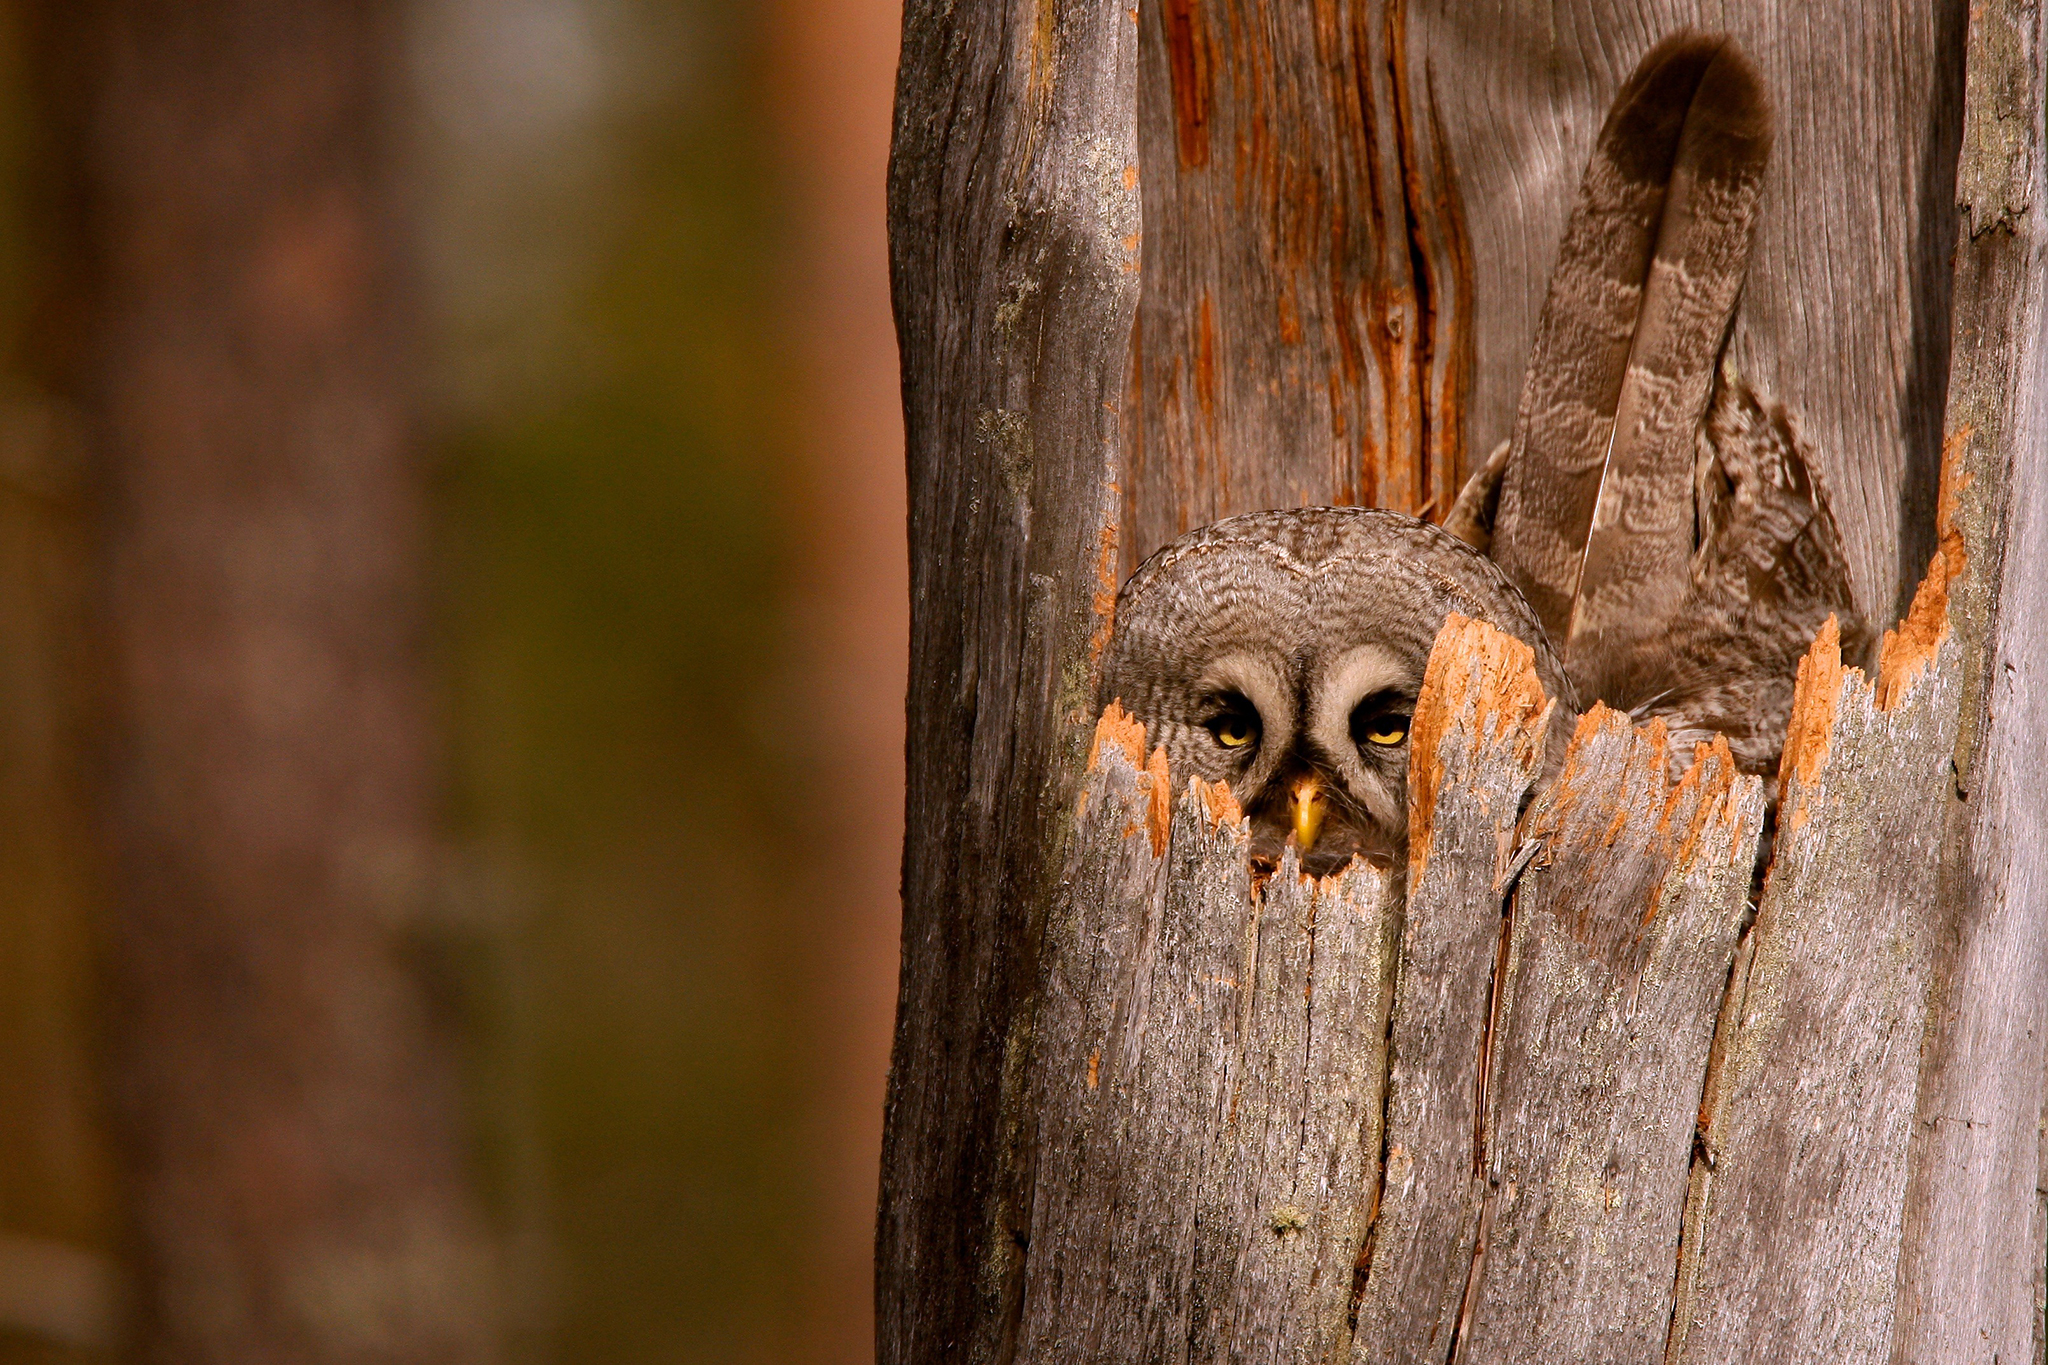 A-camouflaged-grey-owl-protects-its-nest-in-this-Your-Shot-picture-chosen-for-the-wallpaper-wp5602667